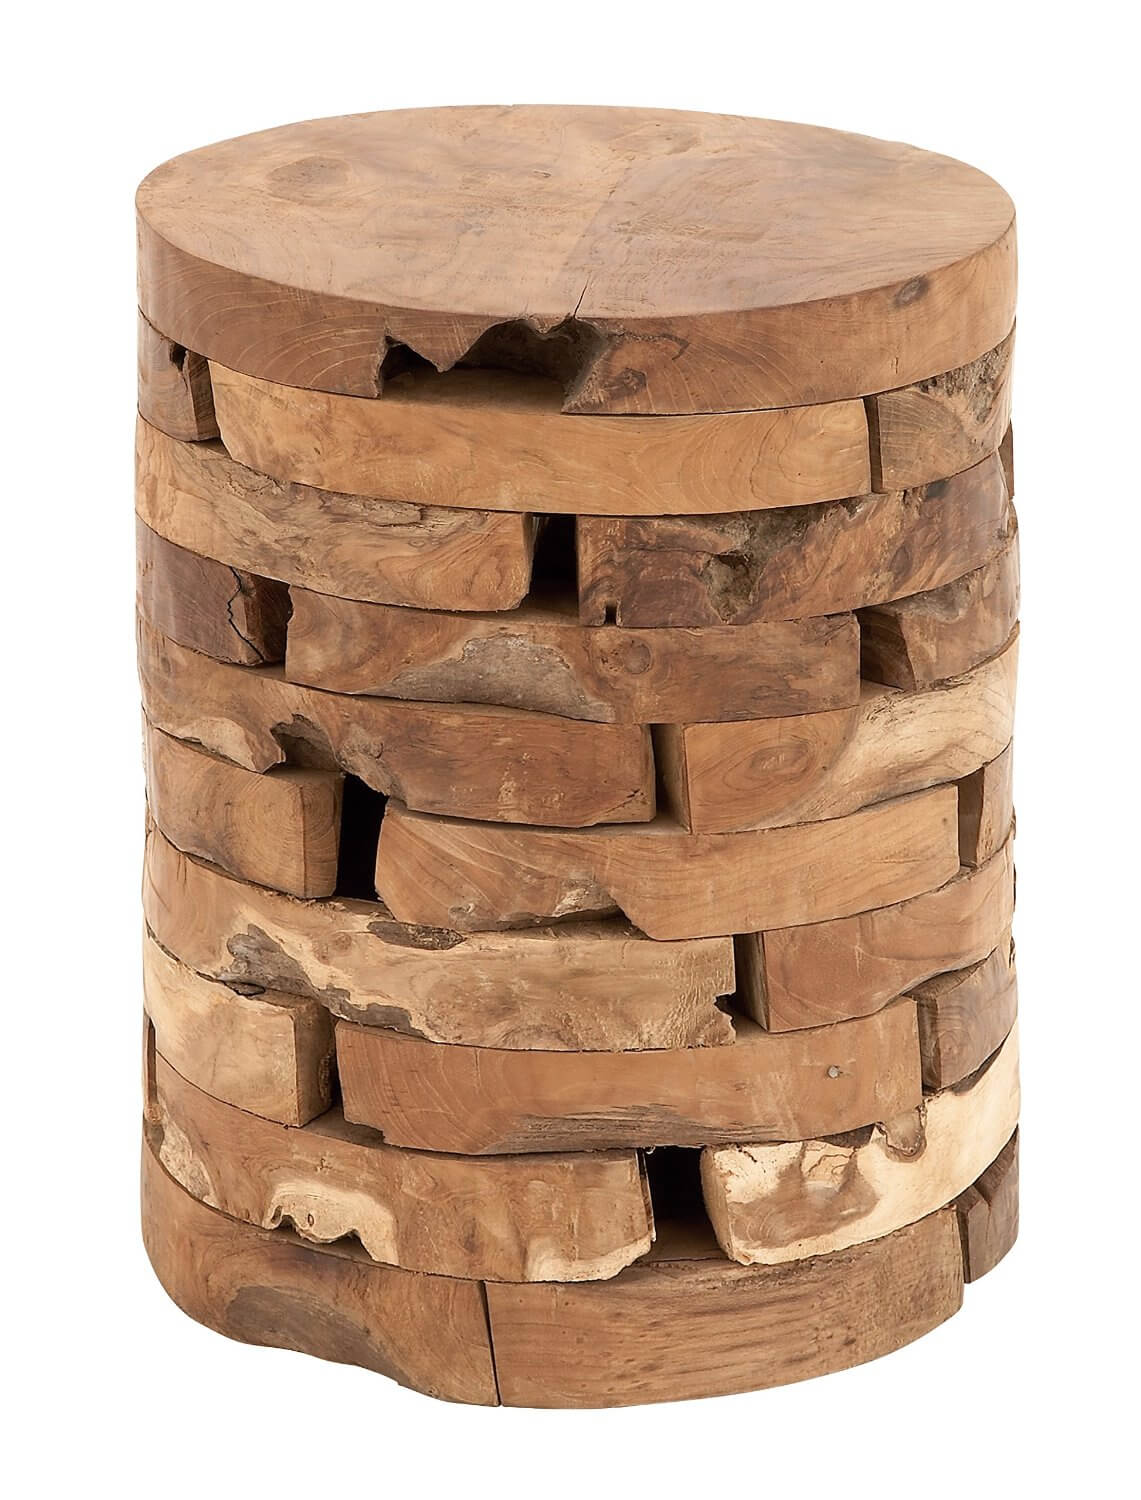 Artisan Teak Wood Stool